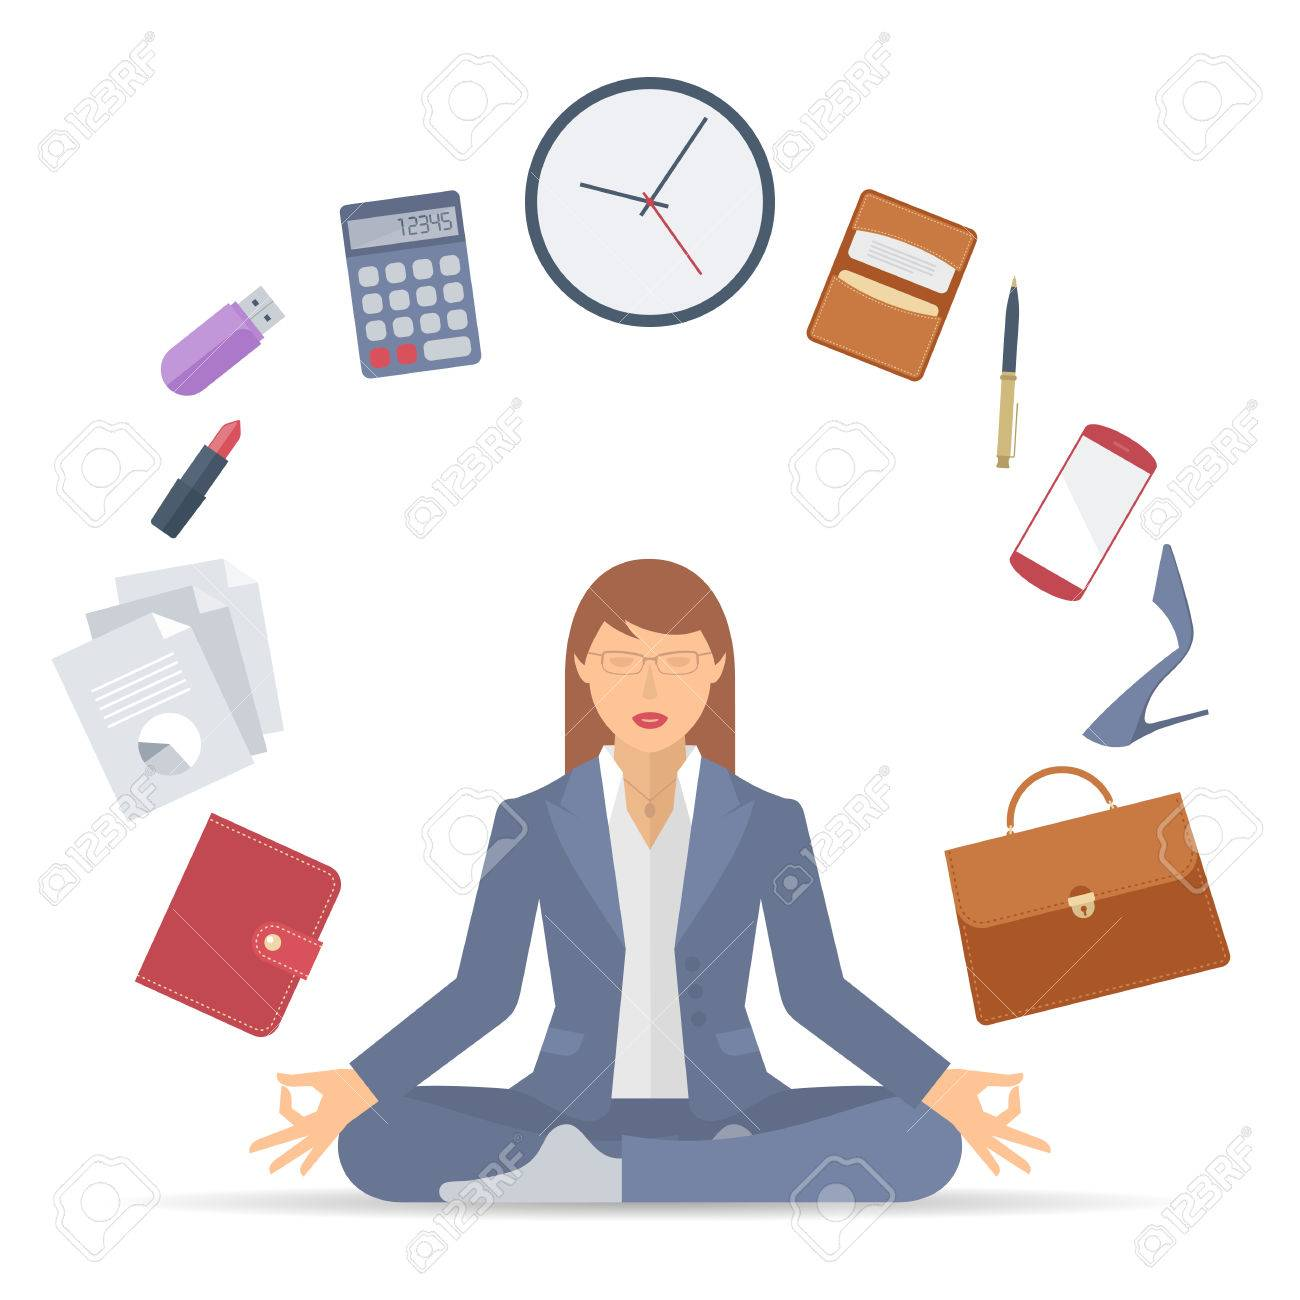 1e701f24f3754 Flat vector business concept illustration of businesswoman meditation.  Woman meditates at work in the lotus